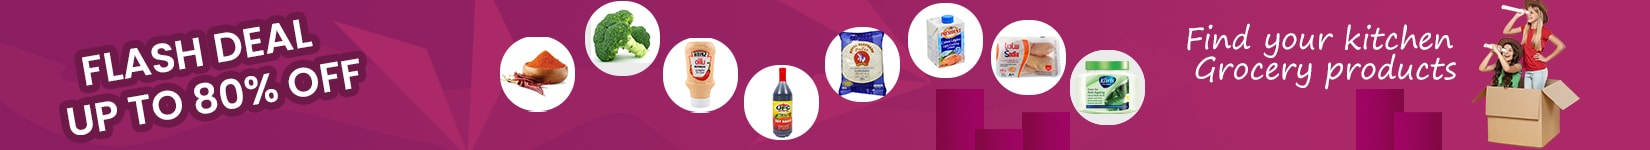 Supperkart Qatar online grocery store flash deal